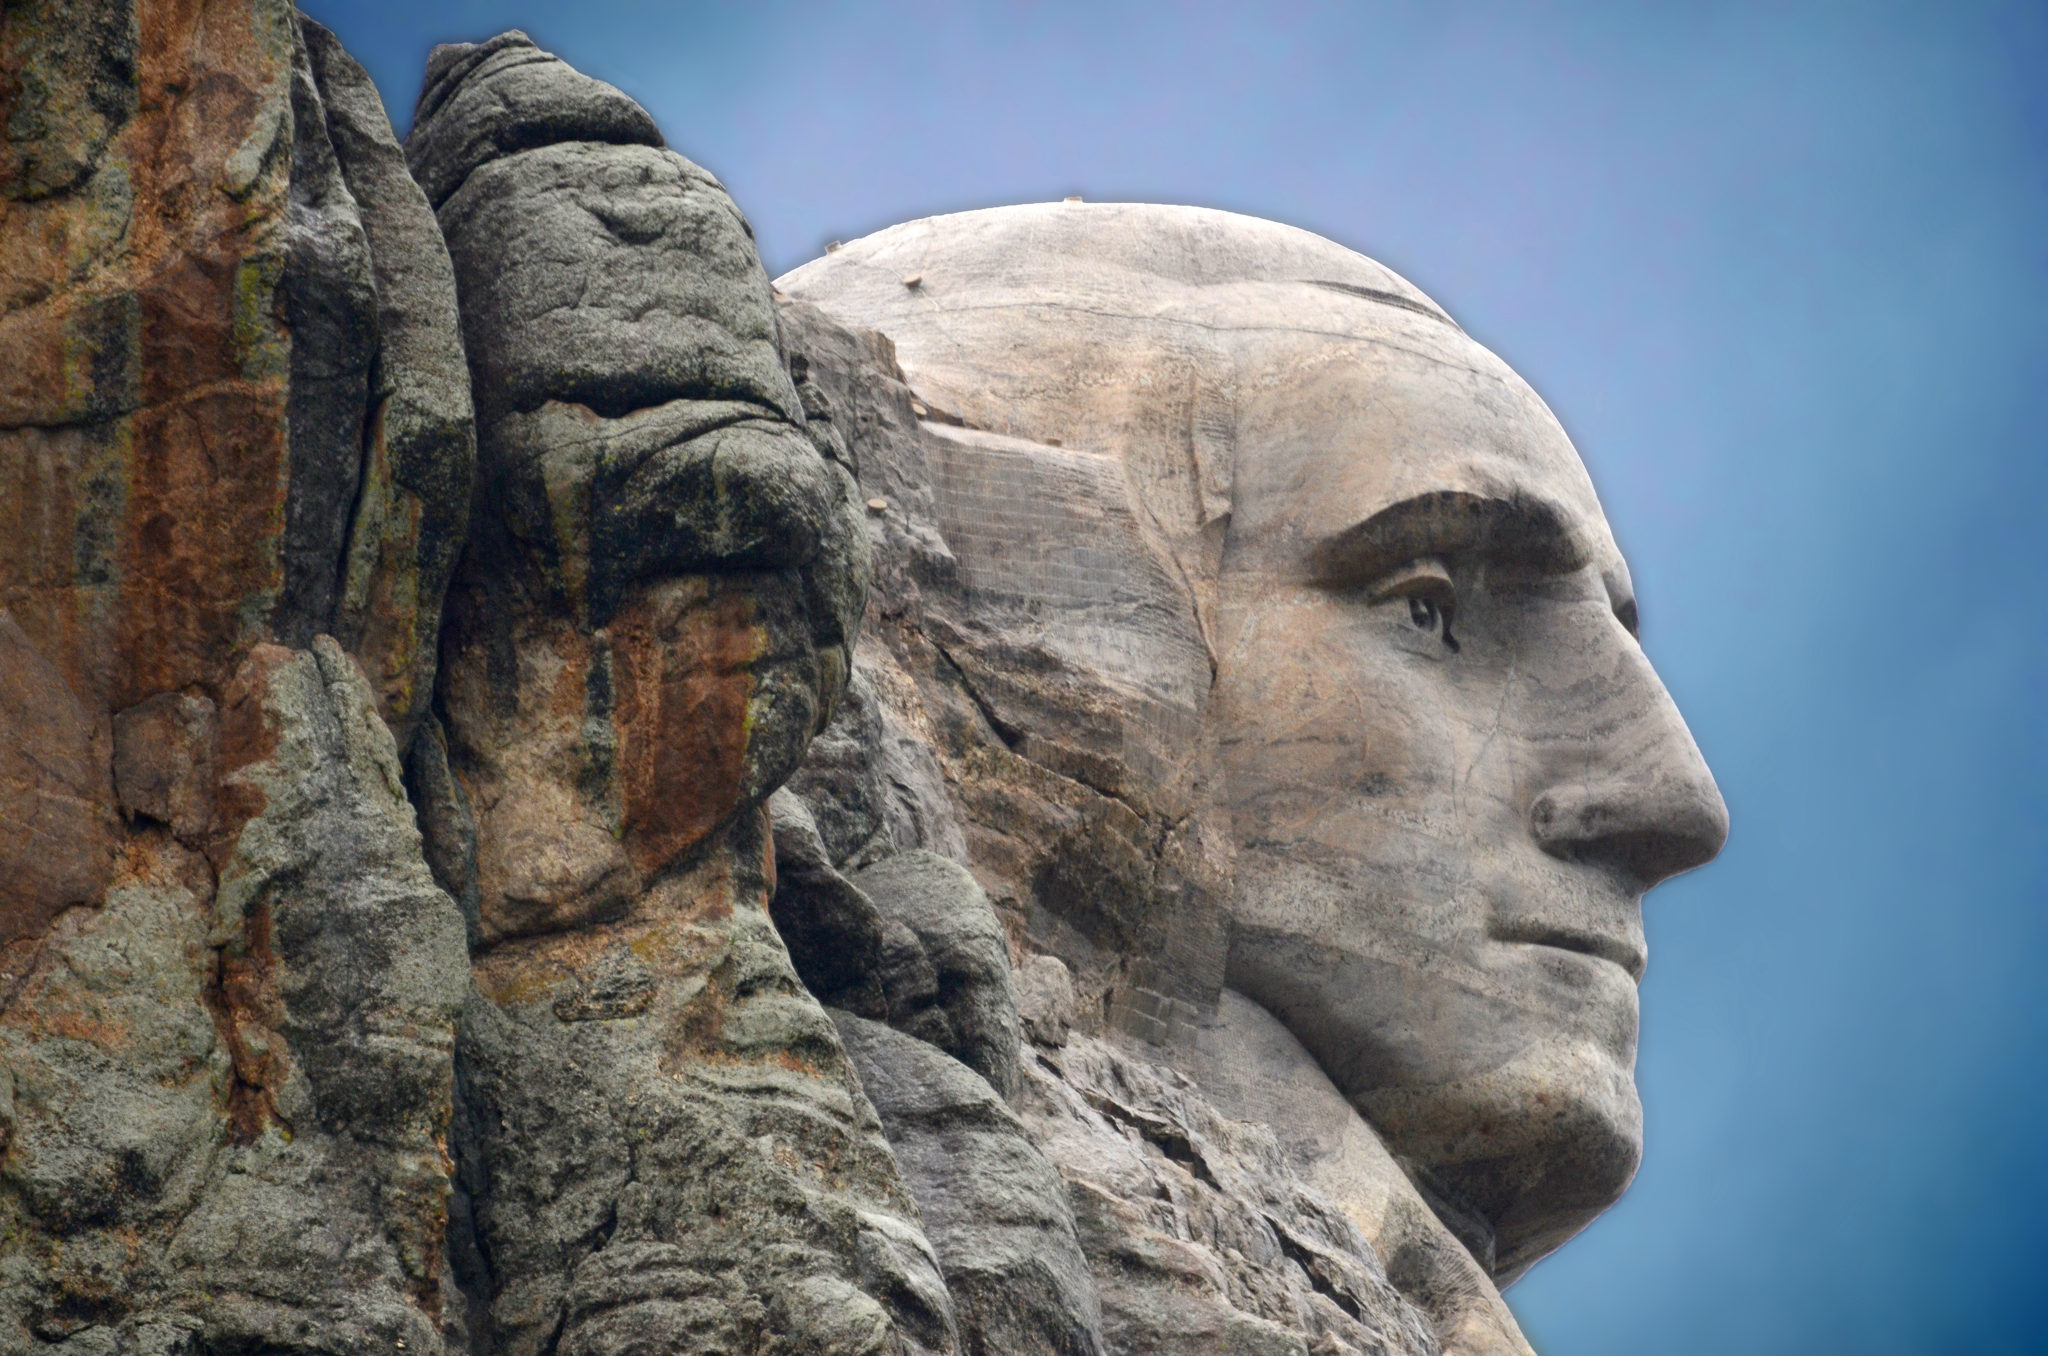 Top 10 Health and Fitness Tips From George Washington